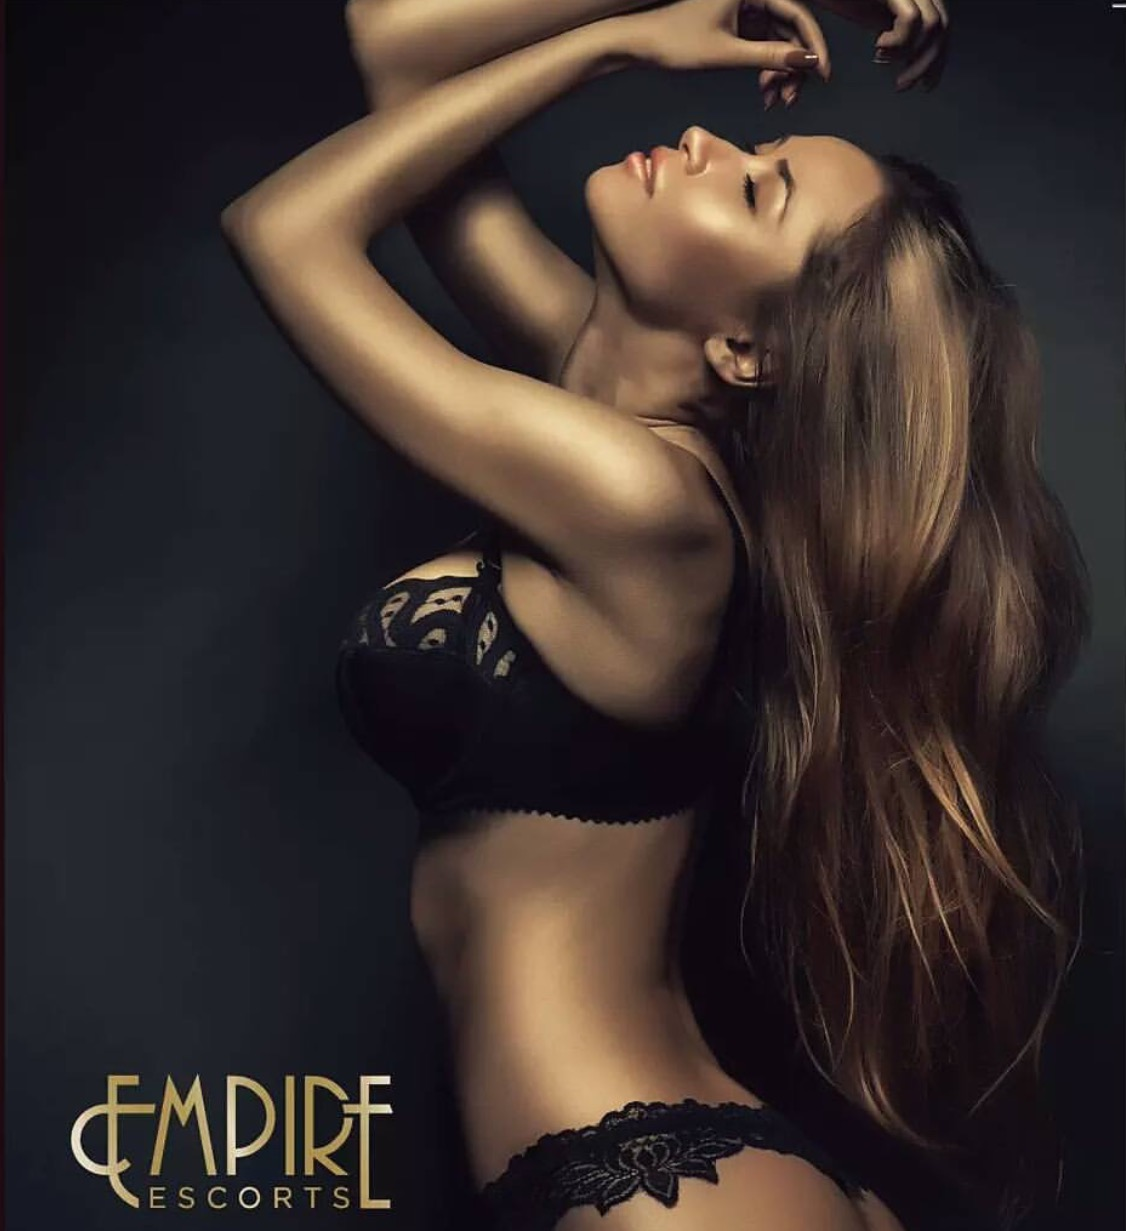 Empire Escorts in Sydney